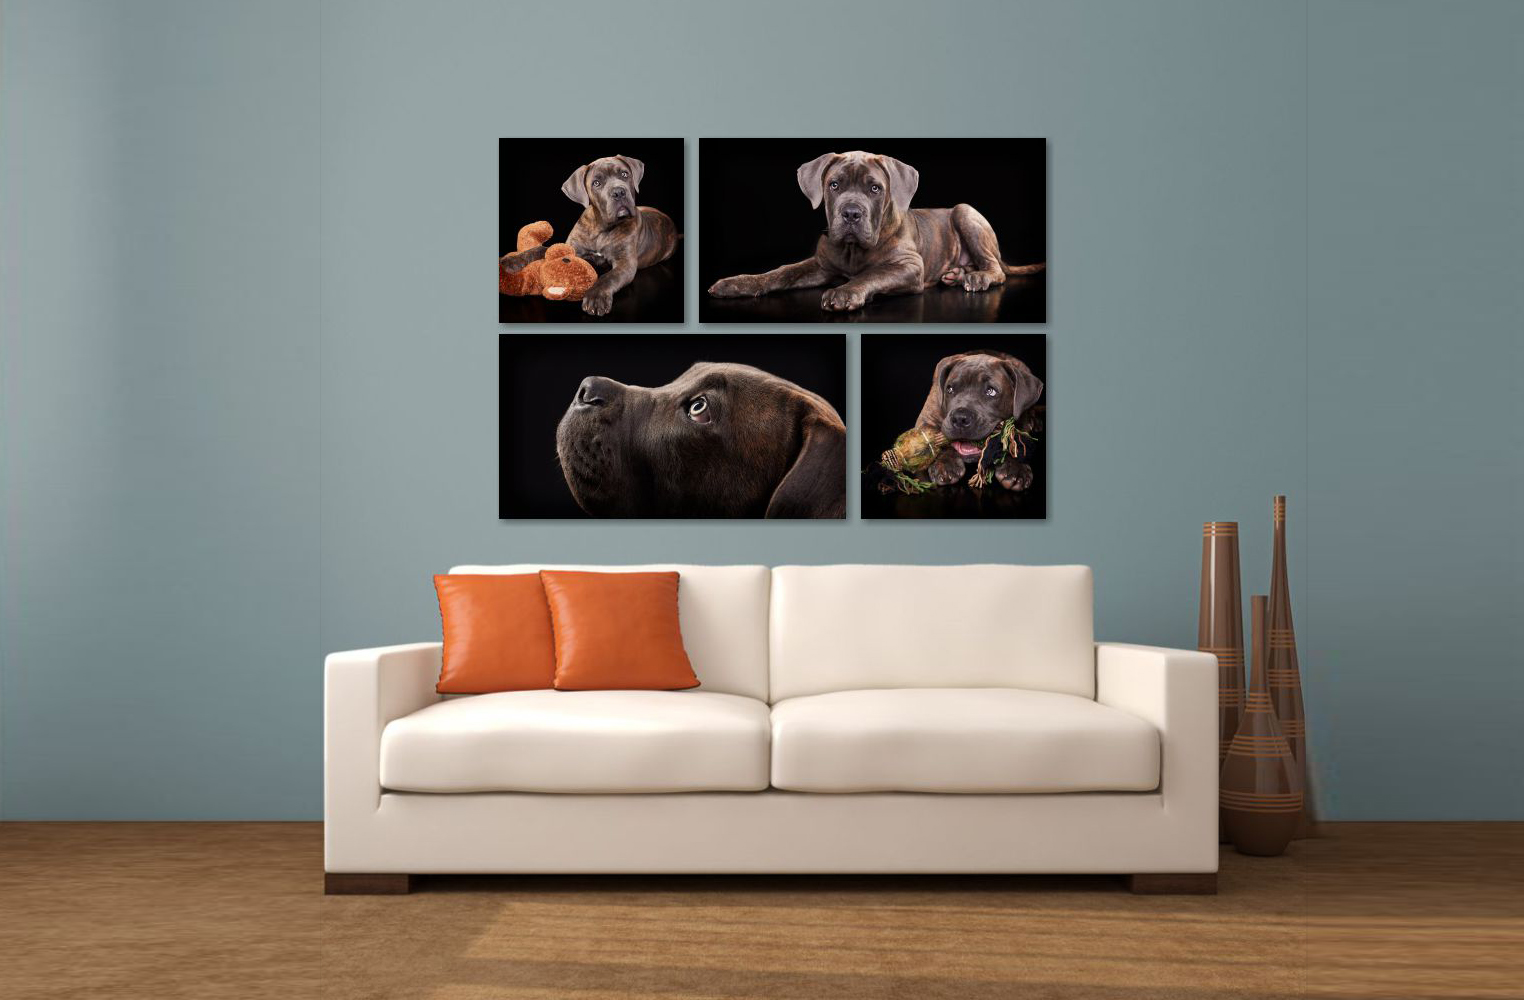 Wall Art. Showcase your best images in stunning detail.